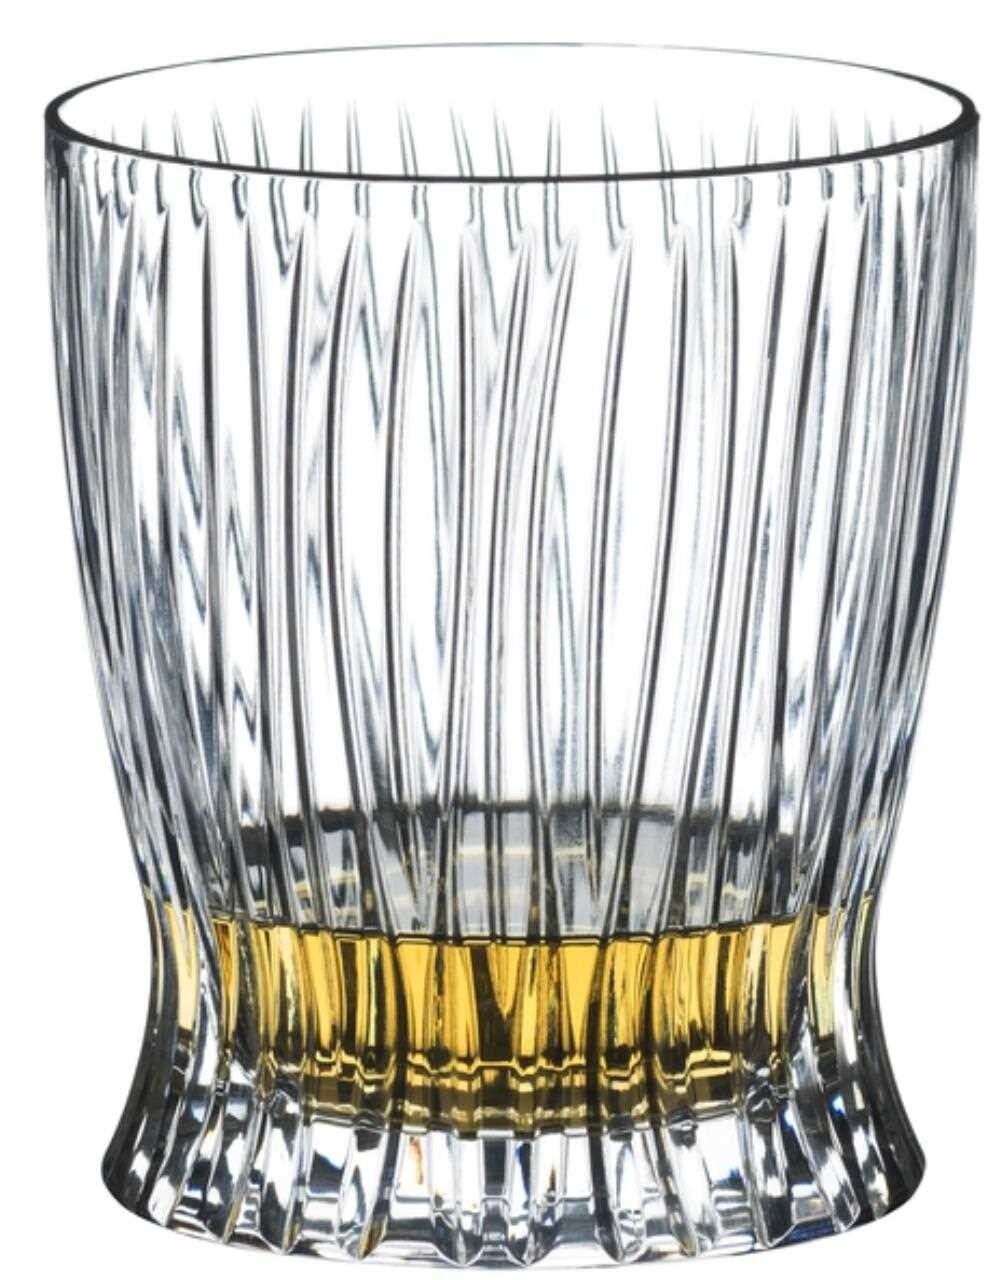 Riedel Fire Whisky Set 2Pah 515/02 S1